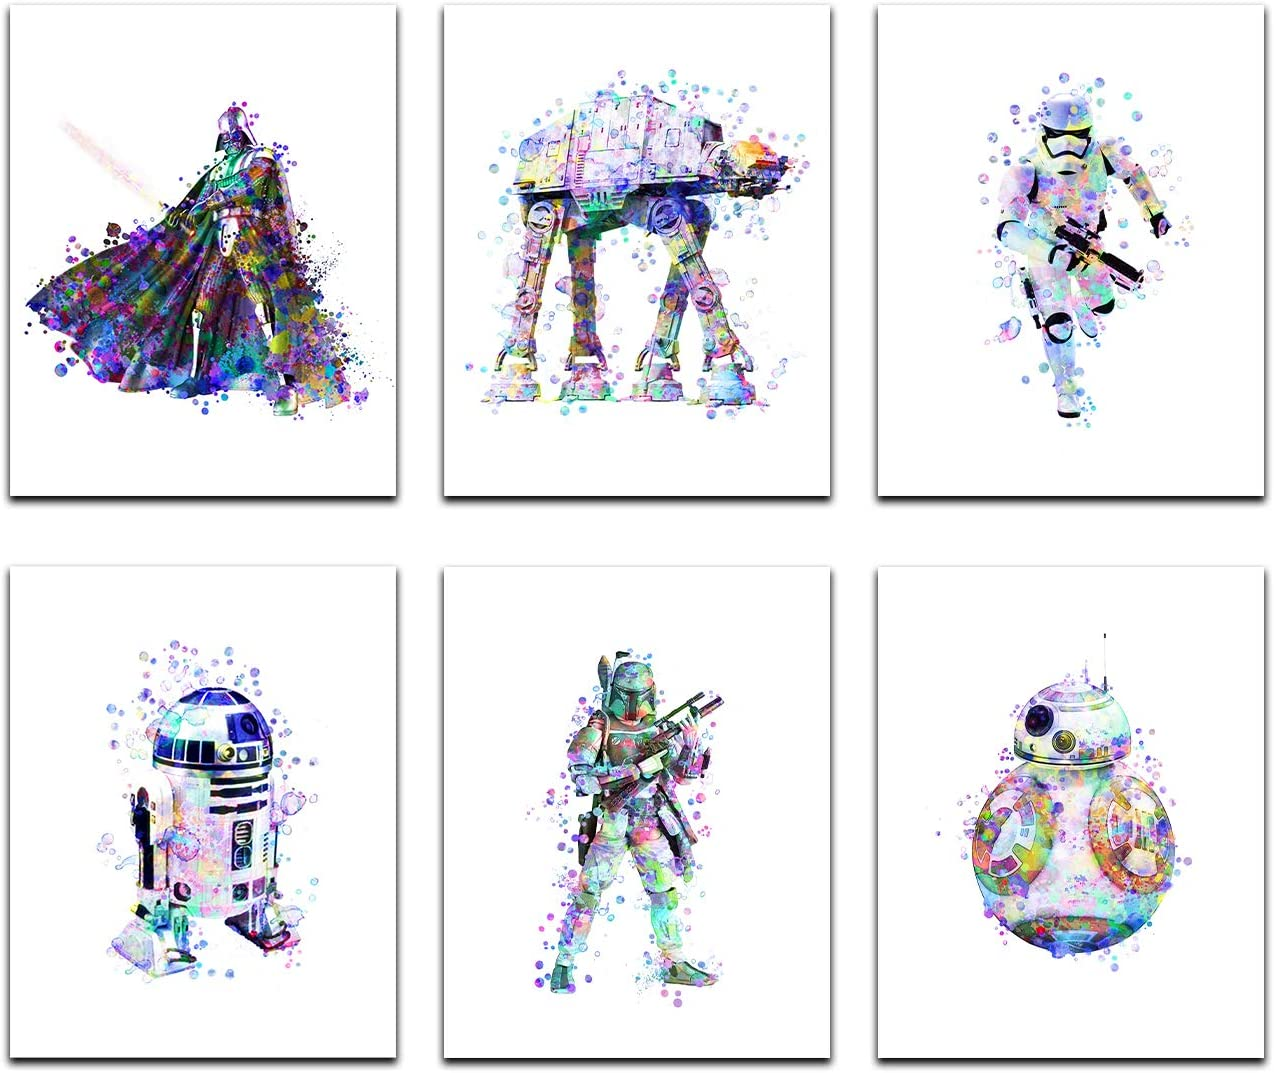 Star Wars Poster Watercolor Prints - Unframed Set Of 6 (8 X 10 Inch) - Star Wars Decor - Bathroom, Bedroom Living Room Decor, Birthday Gift - Darth Vader, Stormtrooper, Boba Fett, ATAT R2D2, BB8